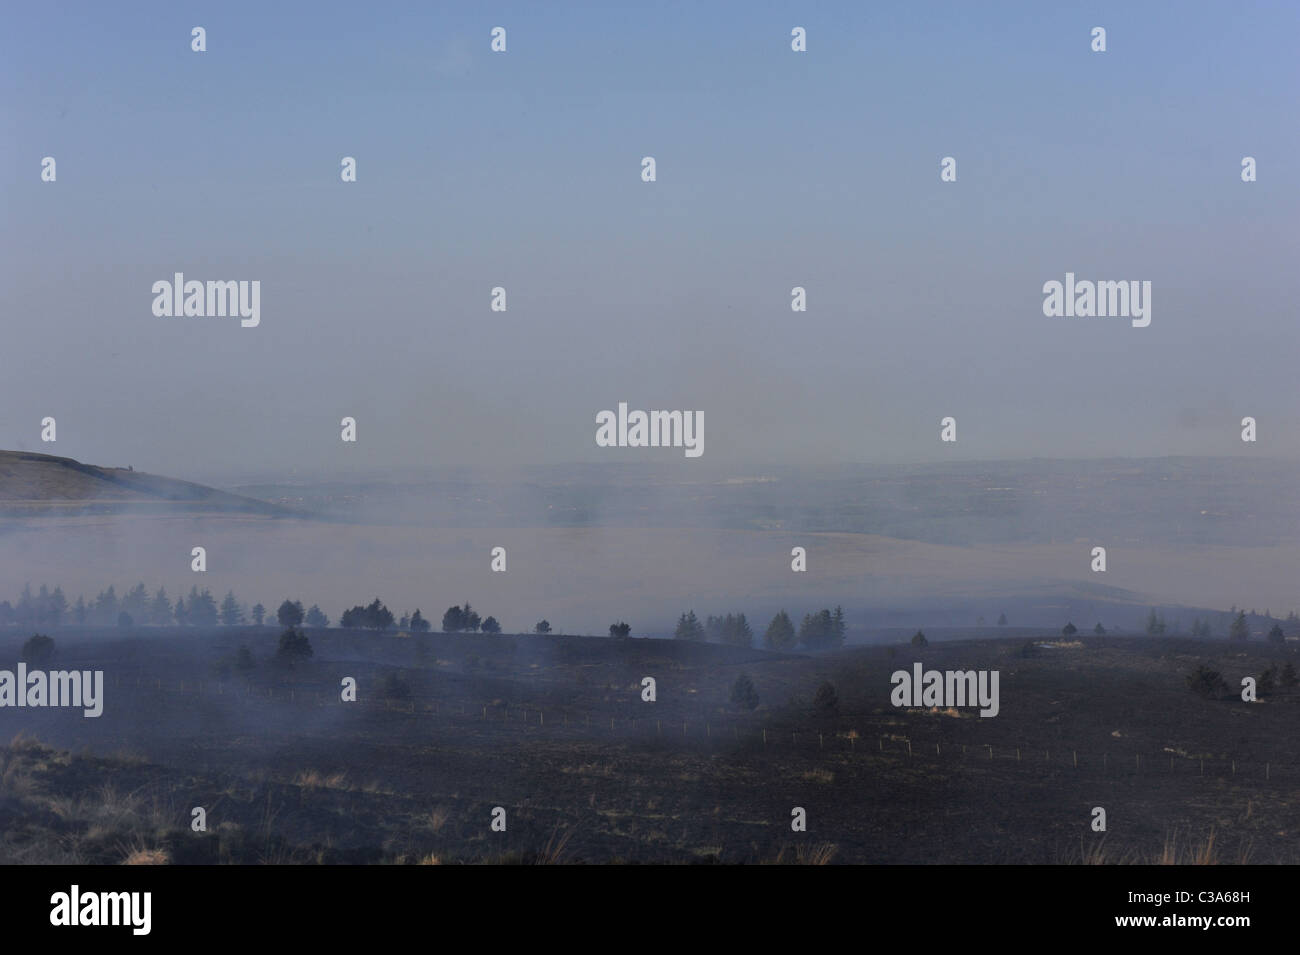 Landscape view of burnt out grass fire with smoke still coming off the remains blowing over the countryside - Stock Image